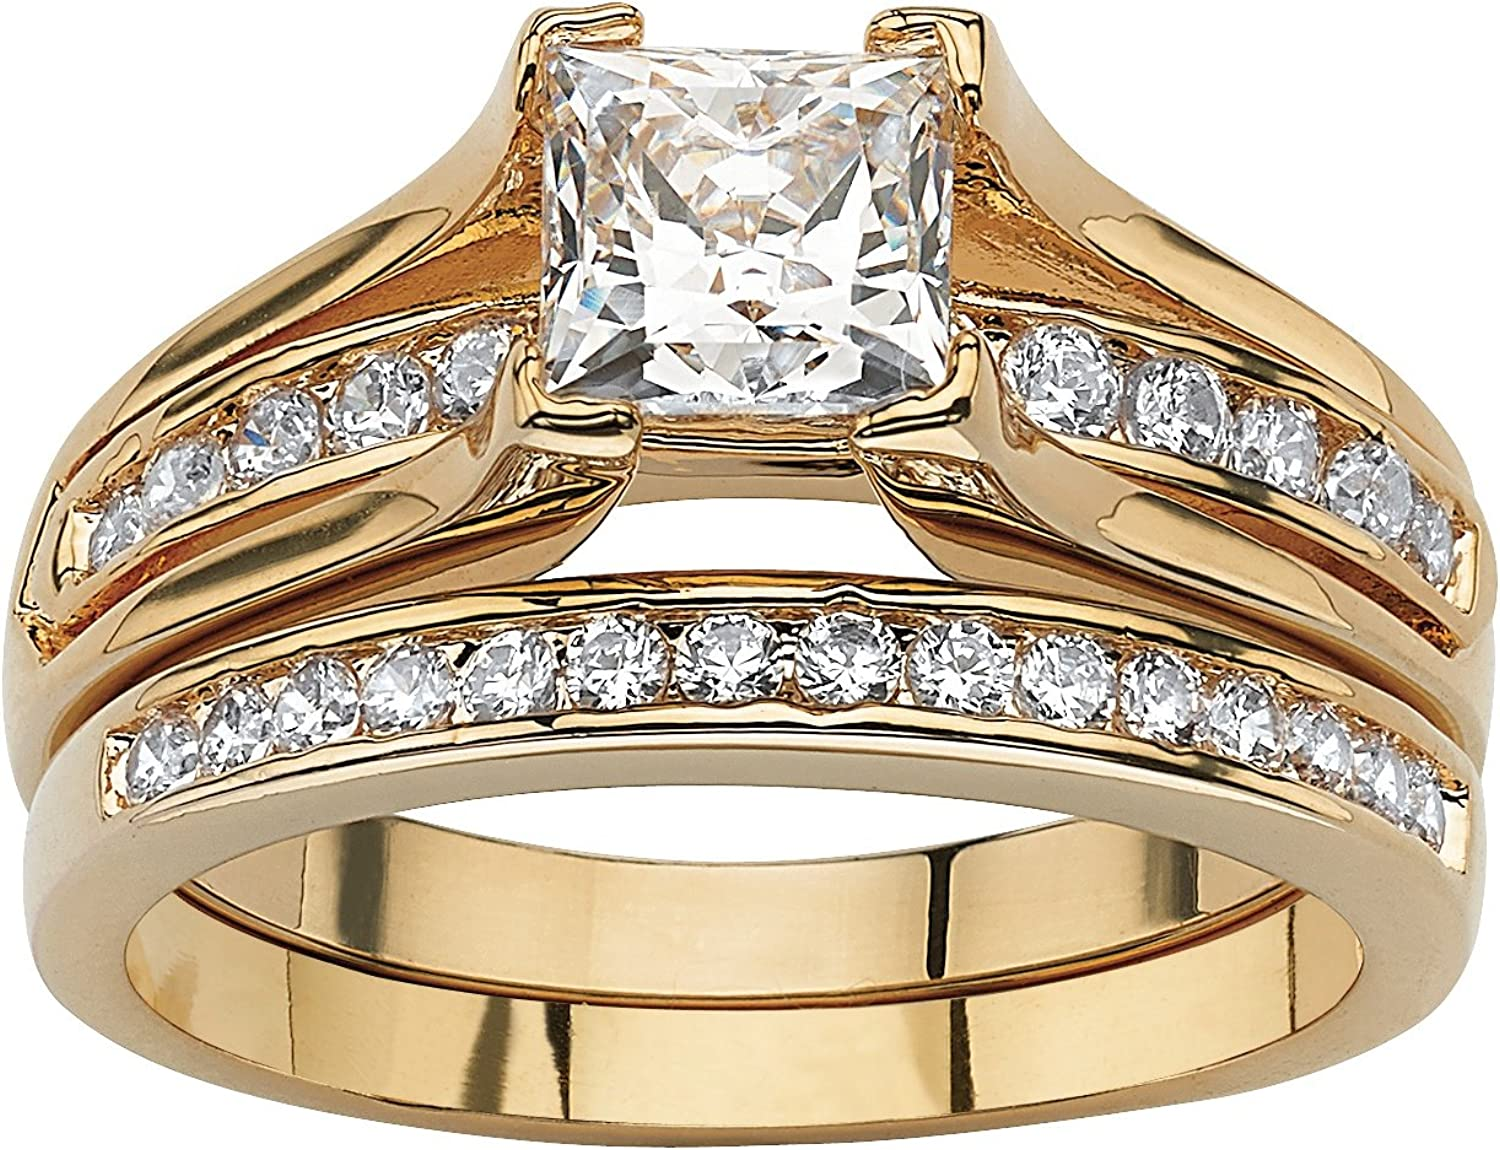 Palm Beach Jewelry 14K Yellow Gold Plated Princess Cut Cubic Zirconia Channel Bridal Ring Set